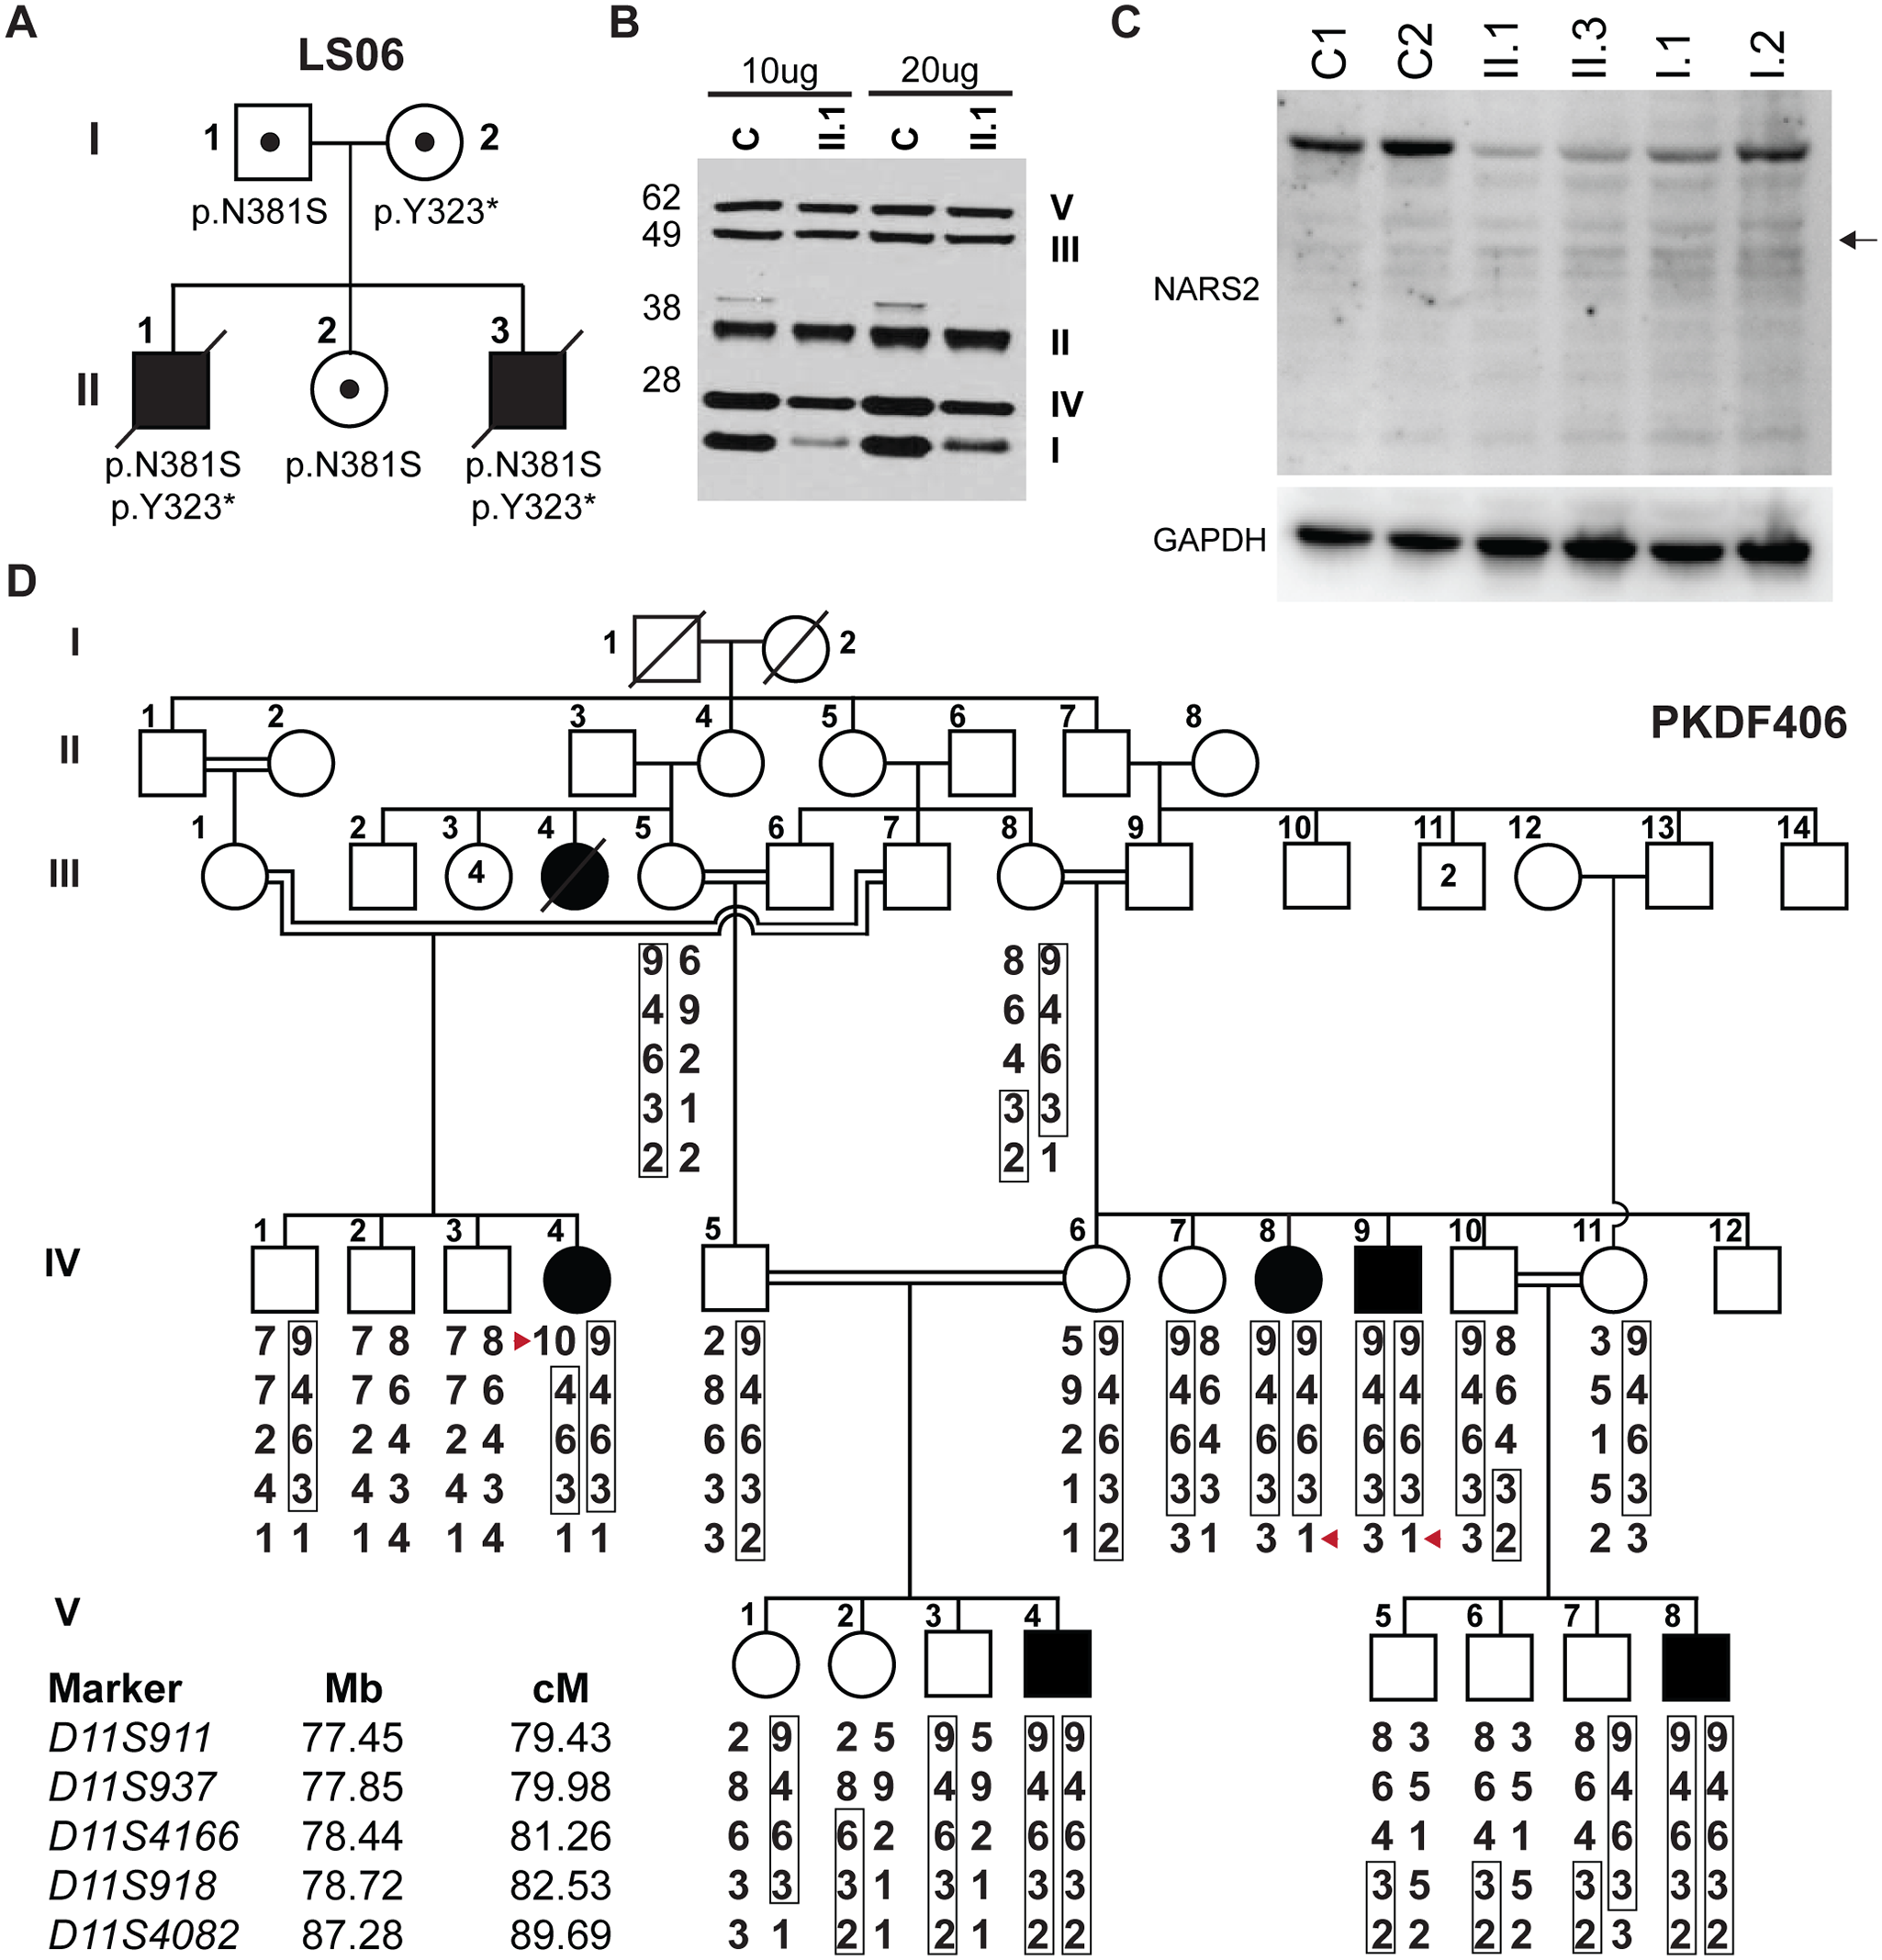 <i>NARS2</i> mutations identified in two unrelated families.